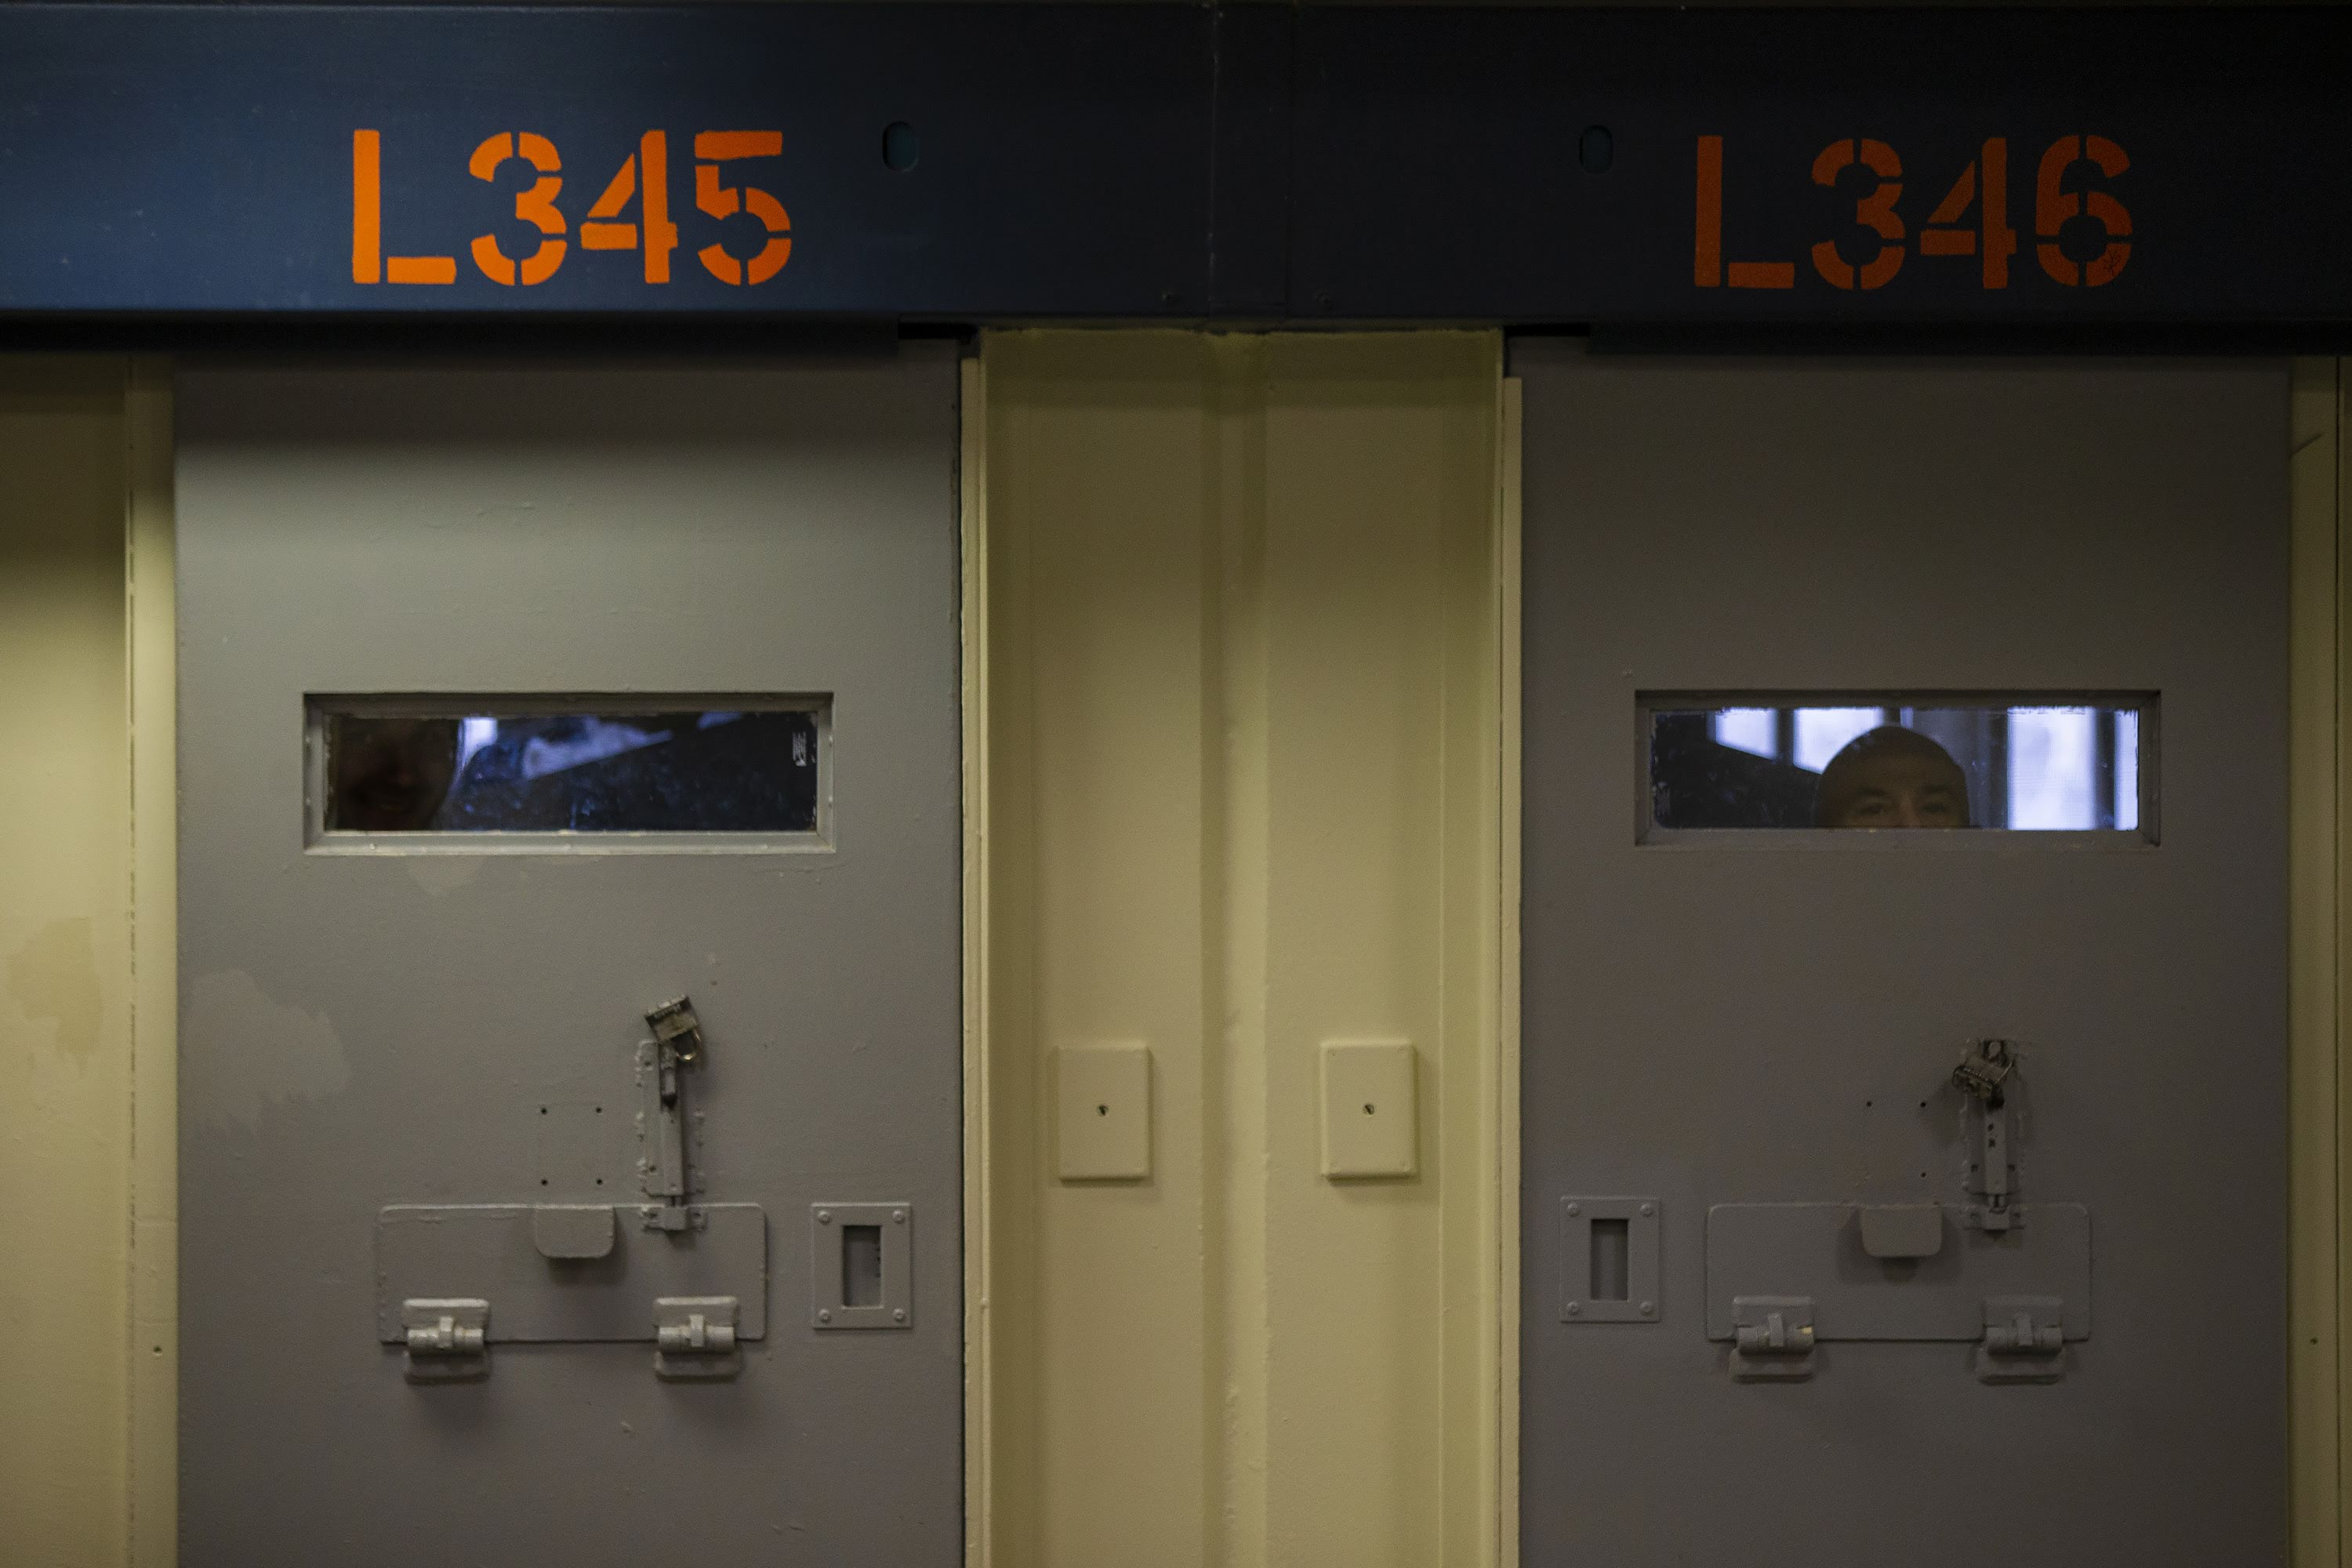 Inmates peer through the windows behind cell doors inside the Worcester County jail.(Jesse Costa/WBUR)